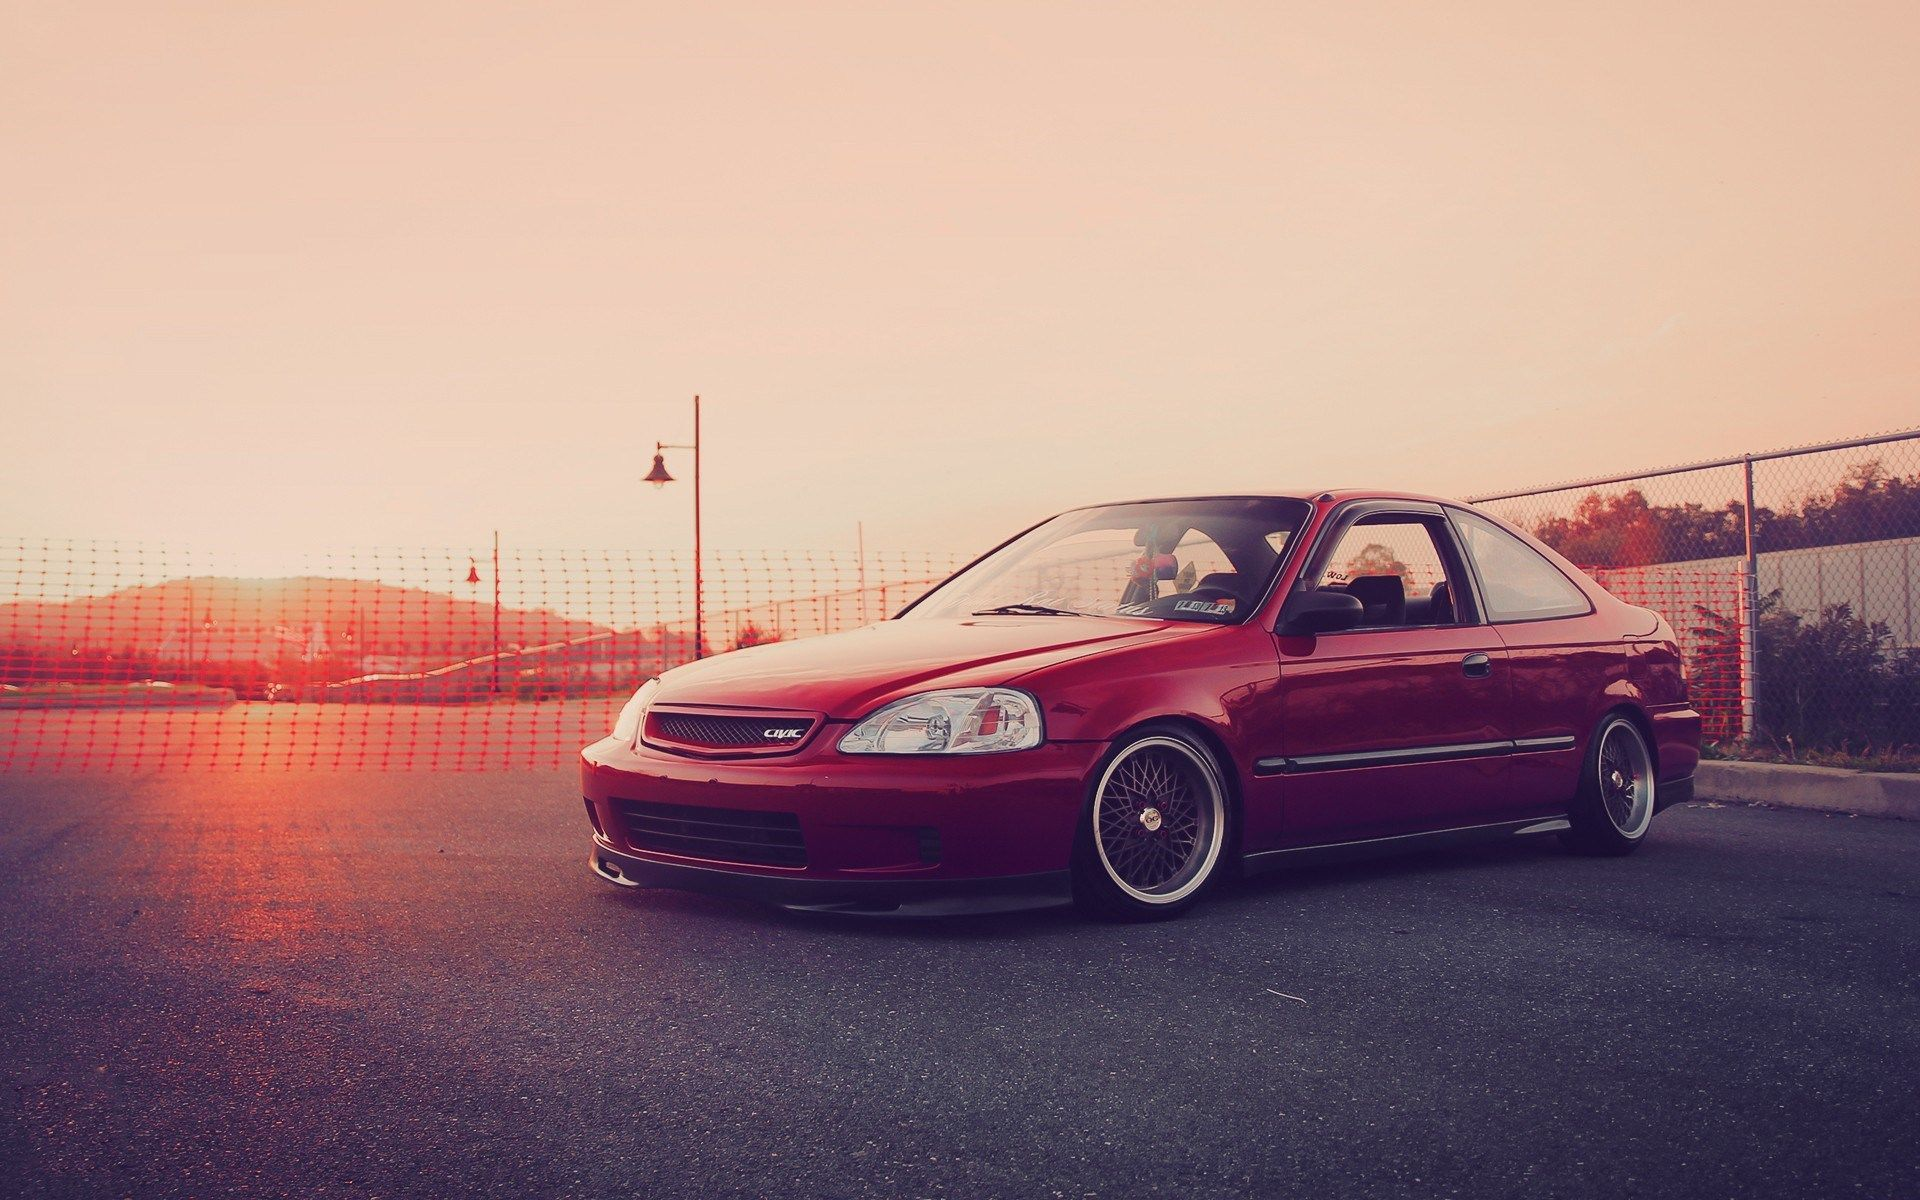 Honda Civic Wallpapers - Wallpaper Cave